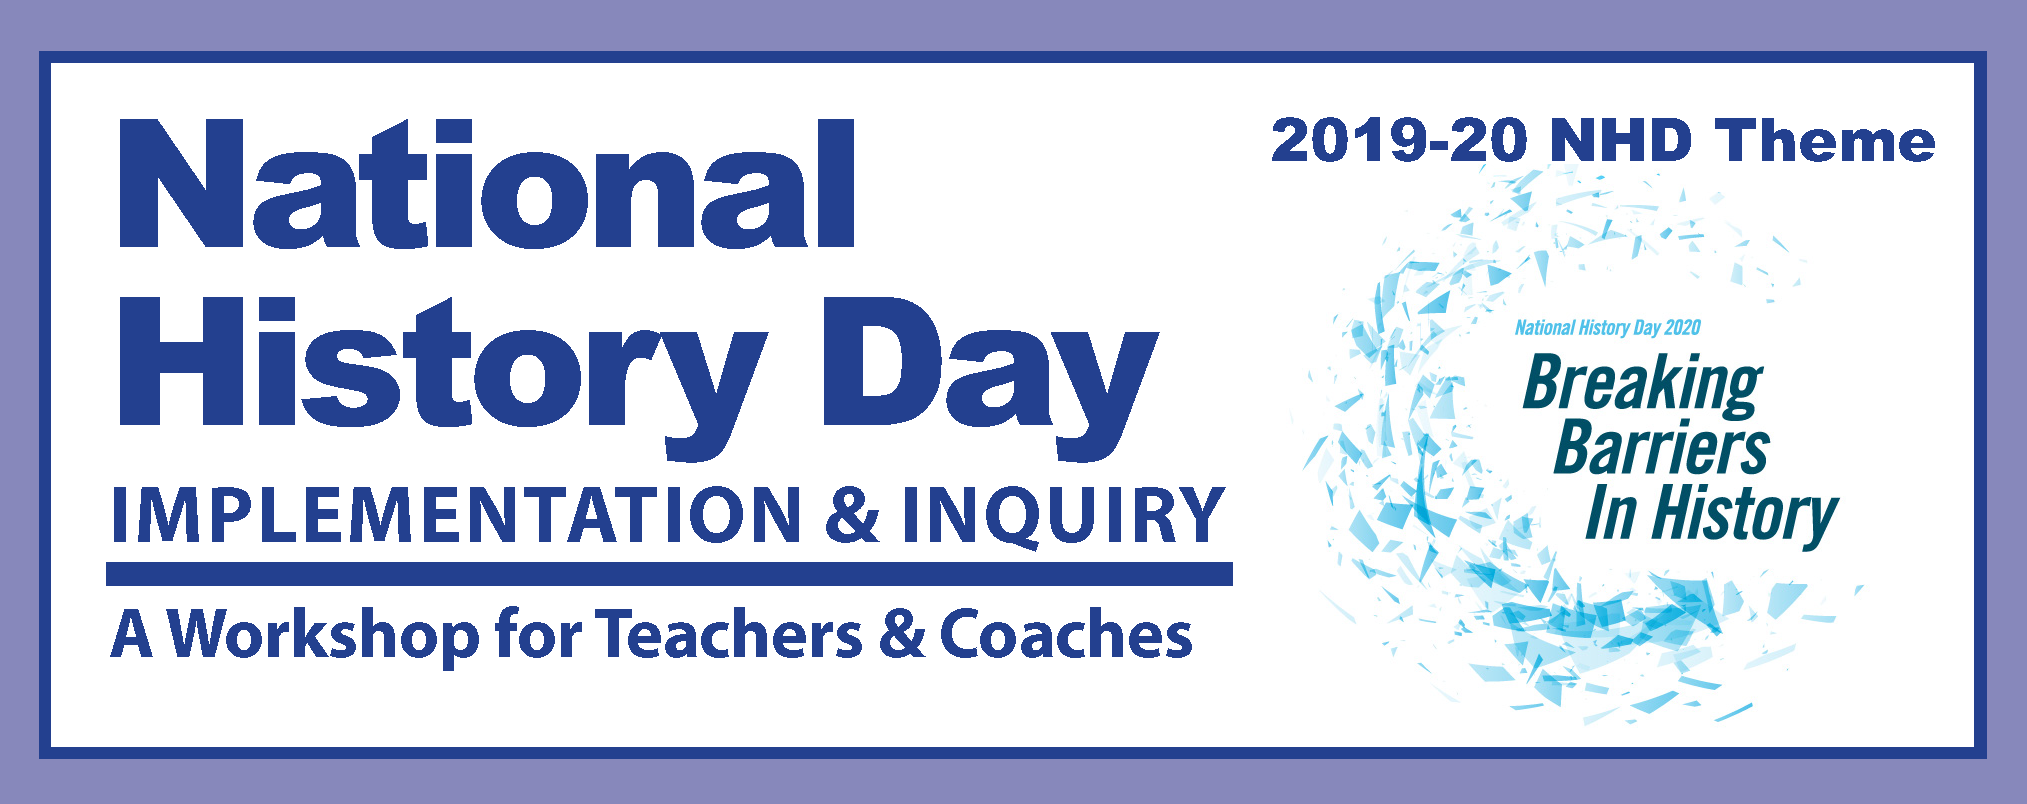 National History Day: Implementation & Inquiry